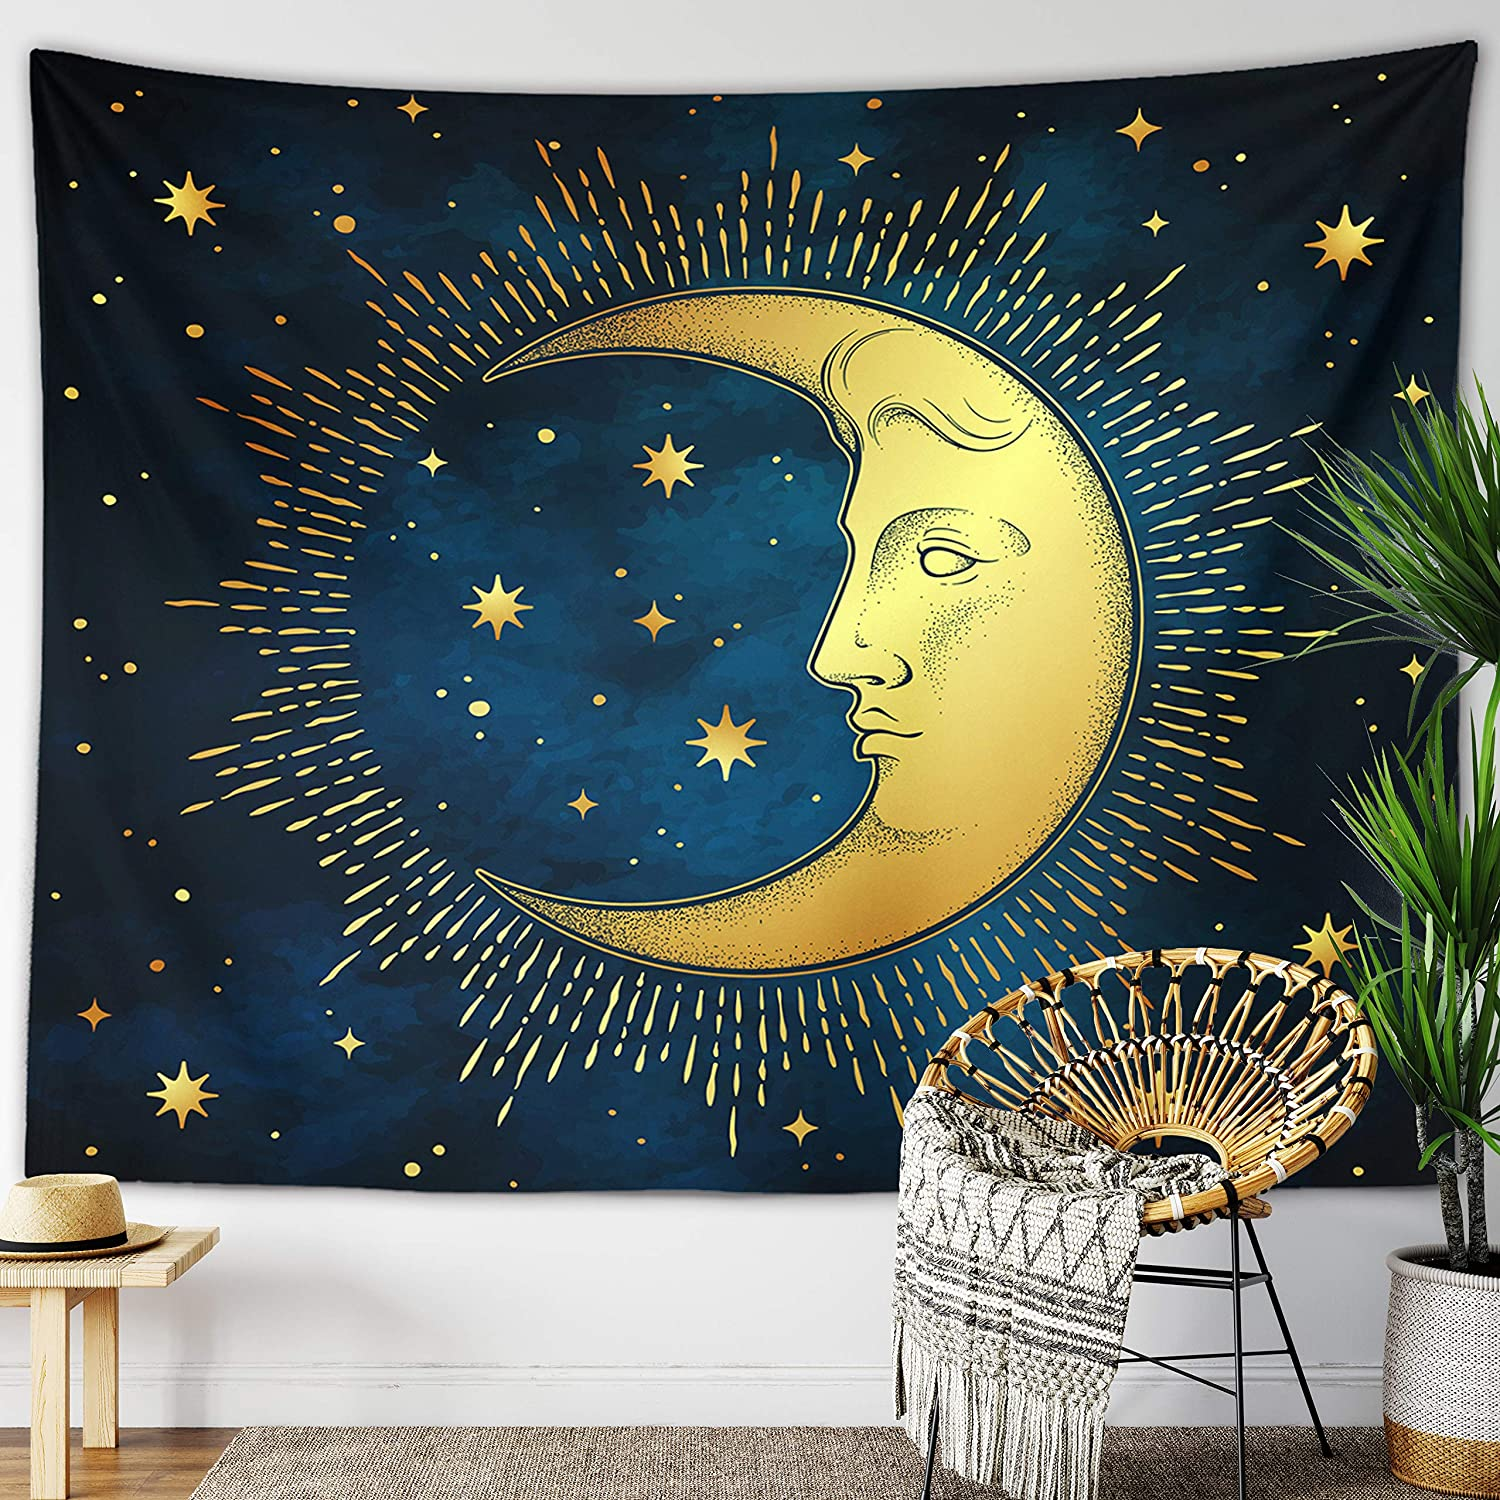 Sun Moon Tapestry Starry Night Wall Hanging Moon Landscape Constellations Lunar Phases Bohemian Eclipse Black and White Wall Decor Astrology Galaxy Boho Celestial Tapestry (Blue Moon Face, 51